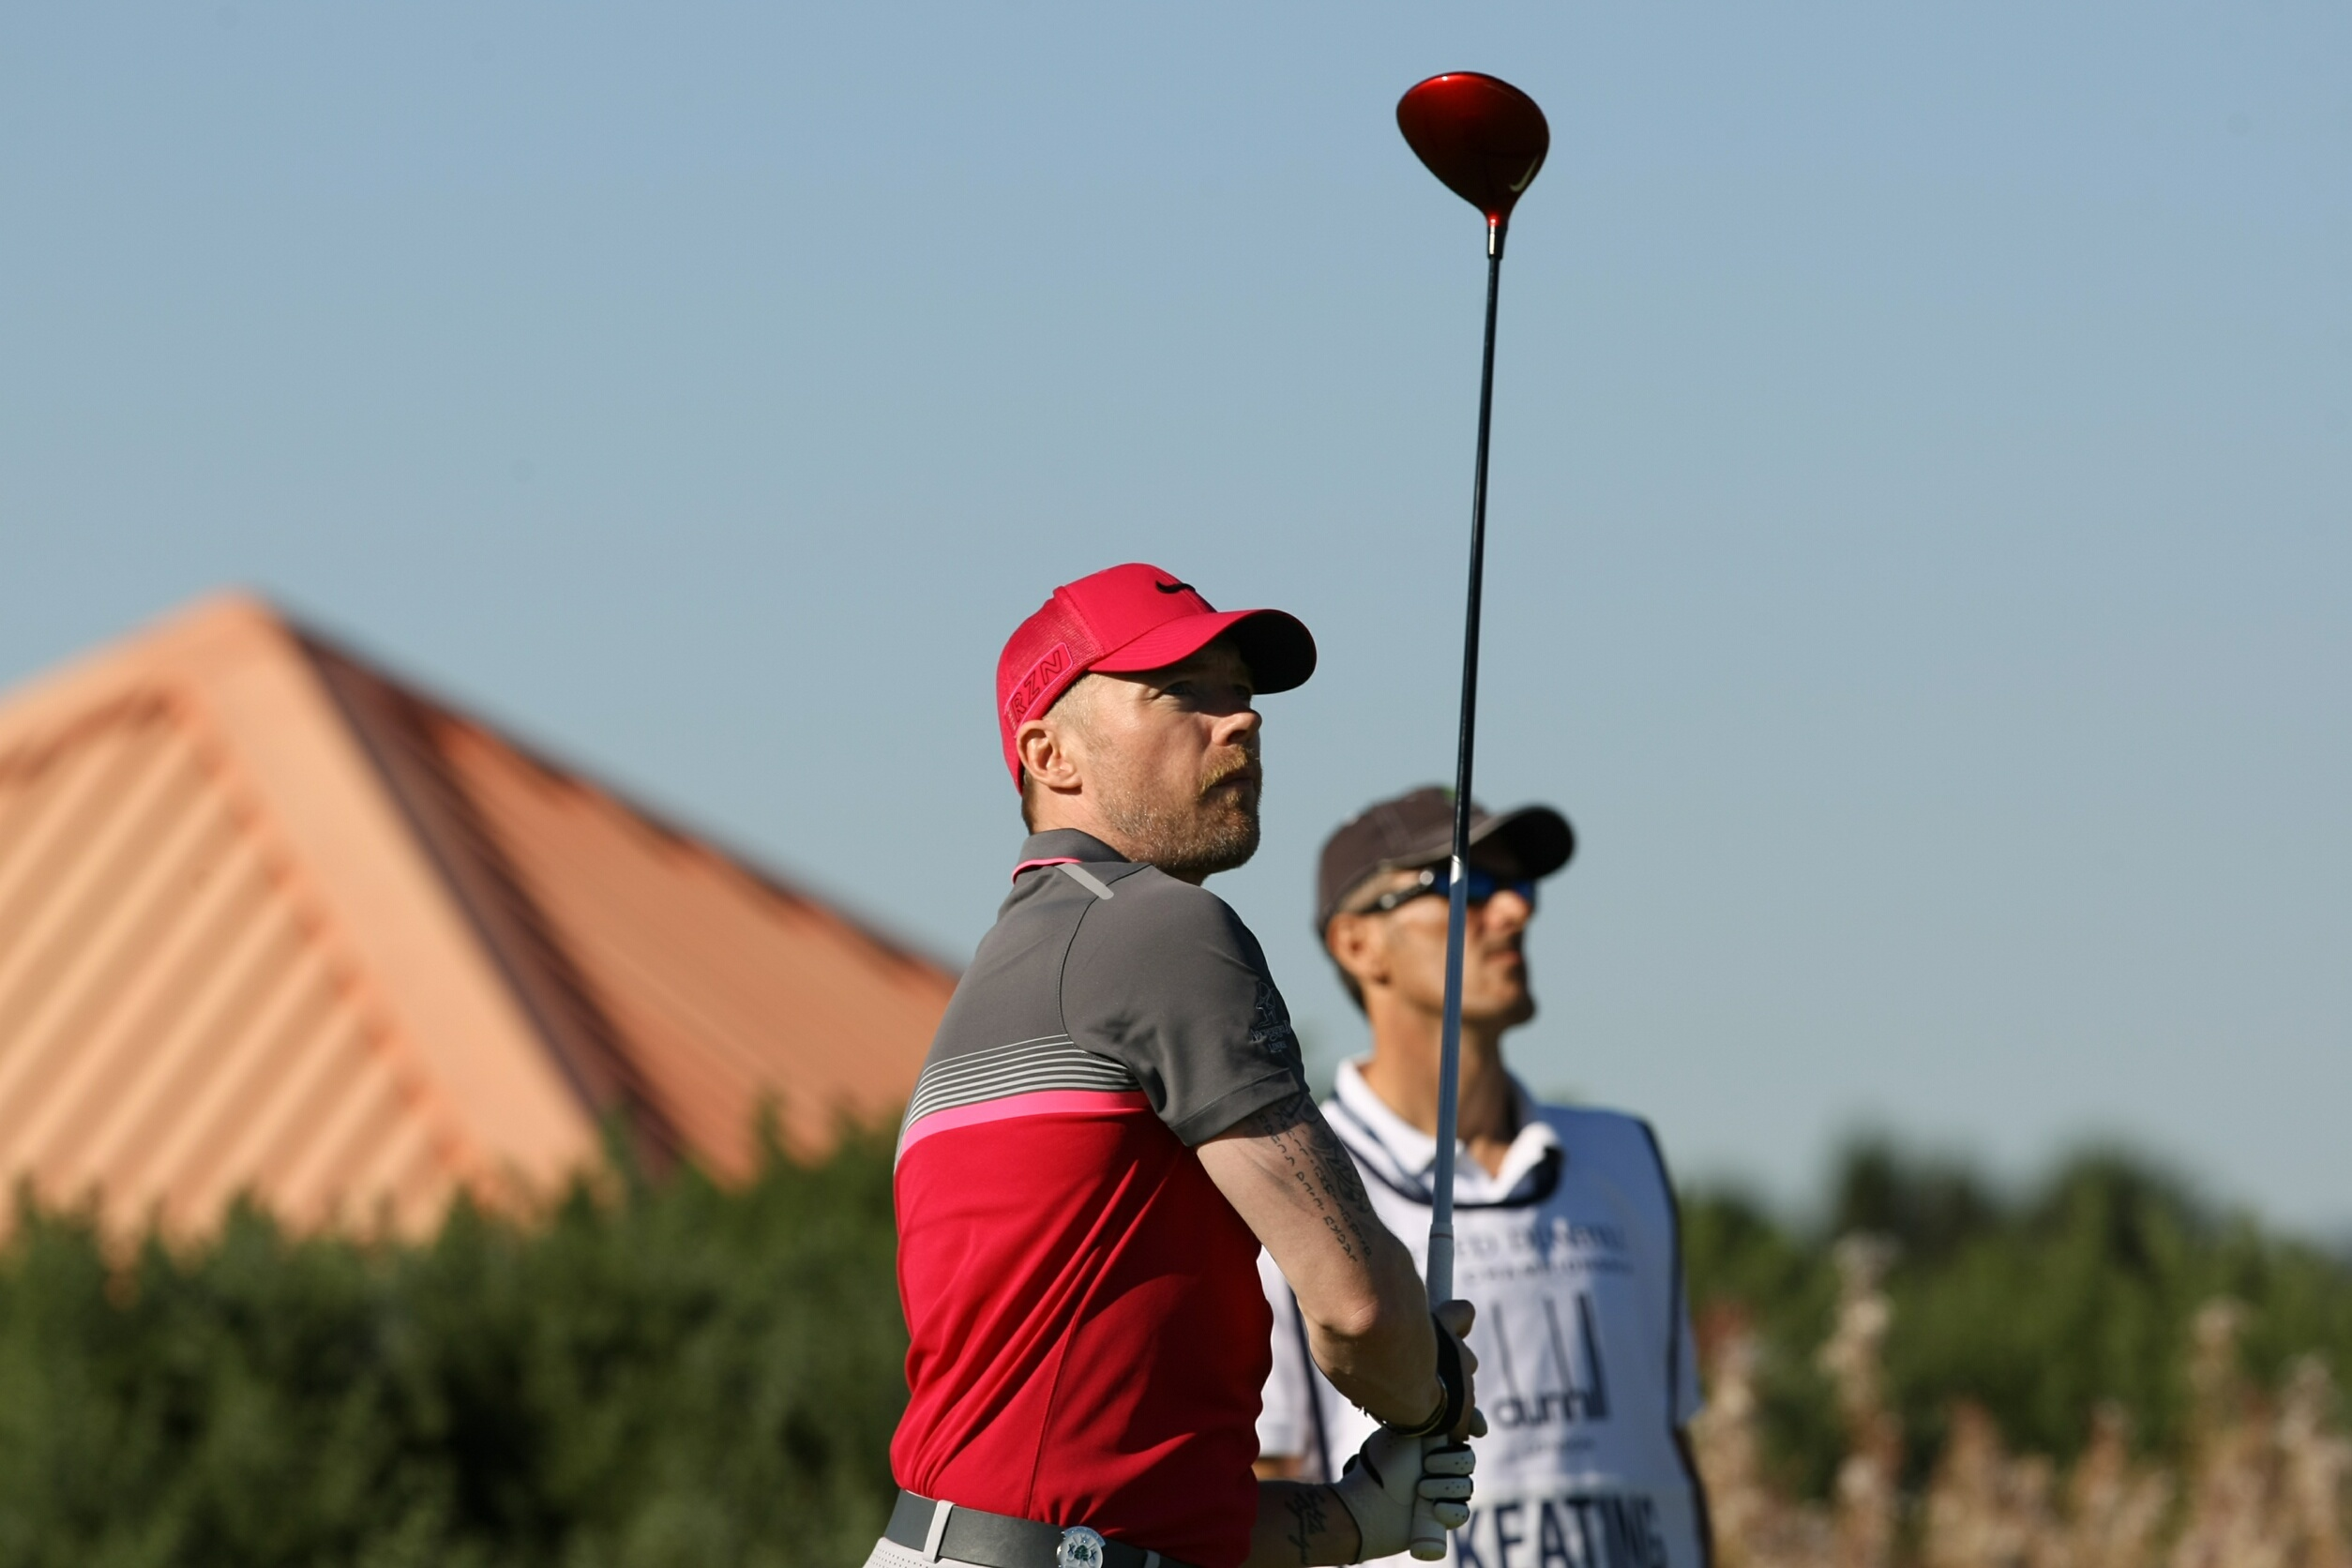 Ronan Keating watches his drive off the 14th tee at Carnoustie last year